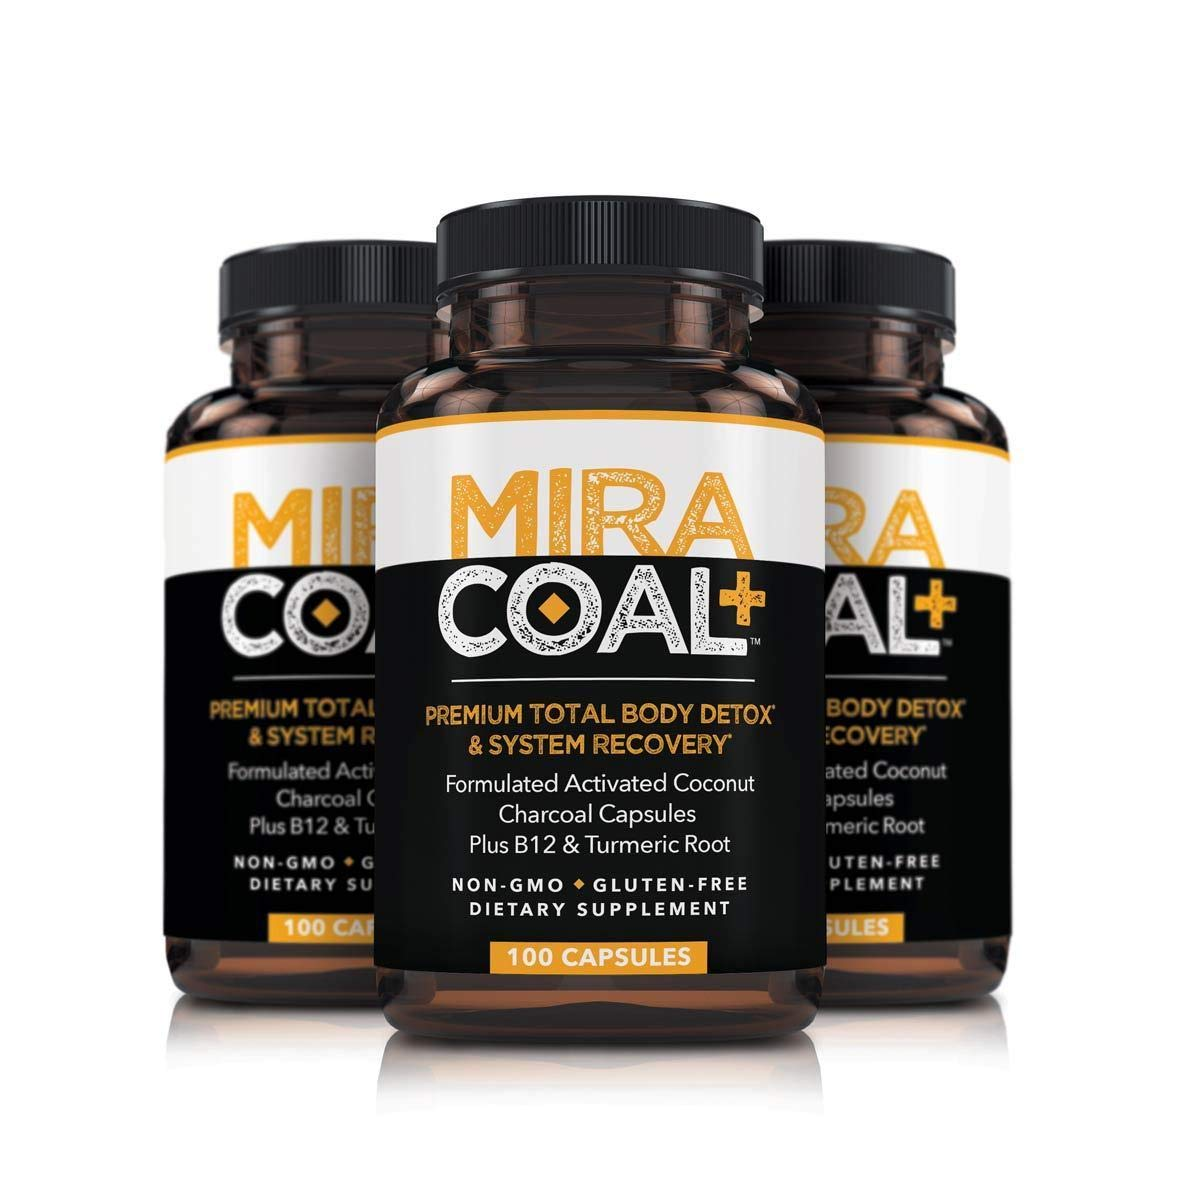 Miracoal Activated Charcoal Capsules for Detox, Weight Loss, Inflammation & Boosted Energy (300 Capsules) | Made with Organic Coconut Charcoal, Turmeric Root and Vitamin B12 | Vegan and Gluten Free